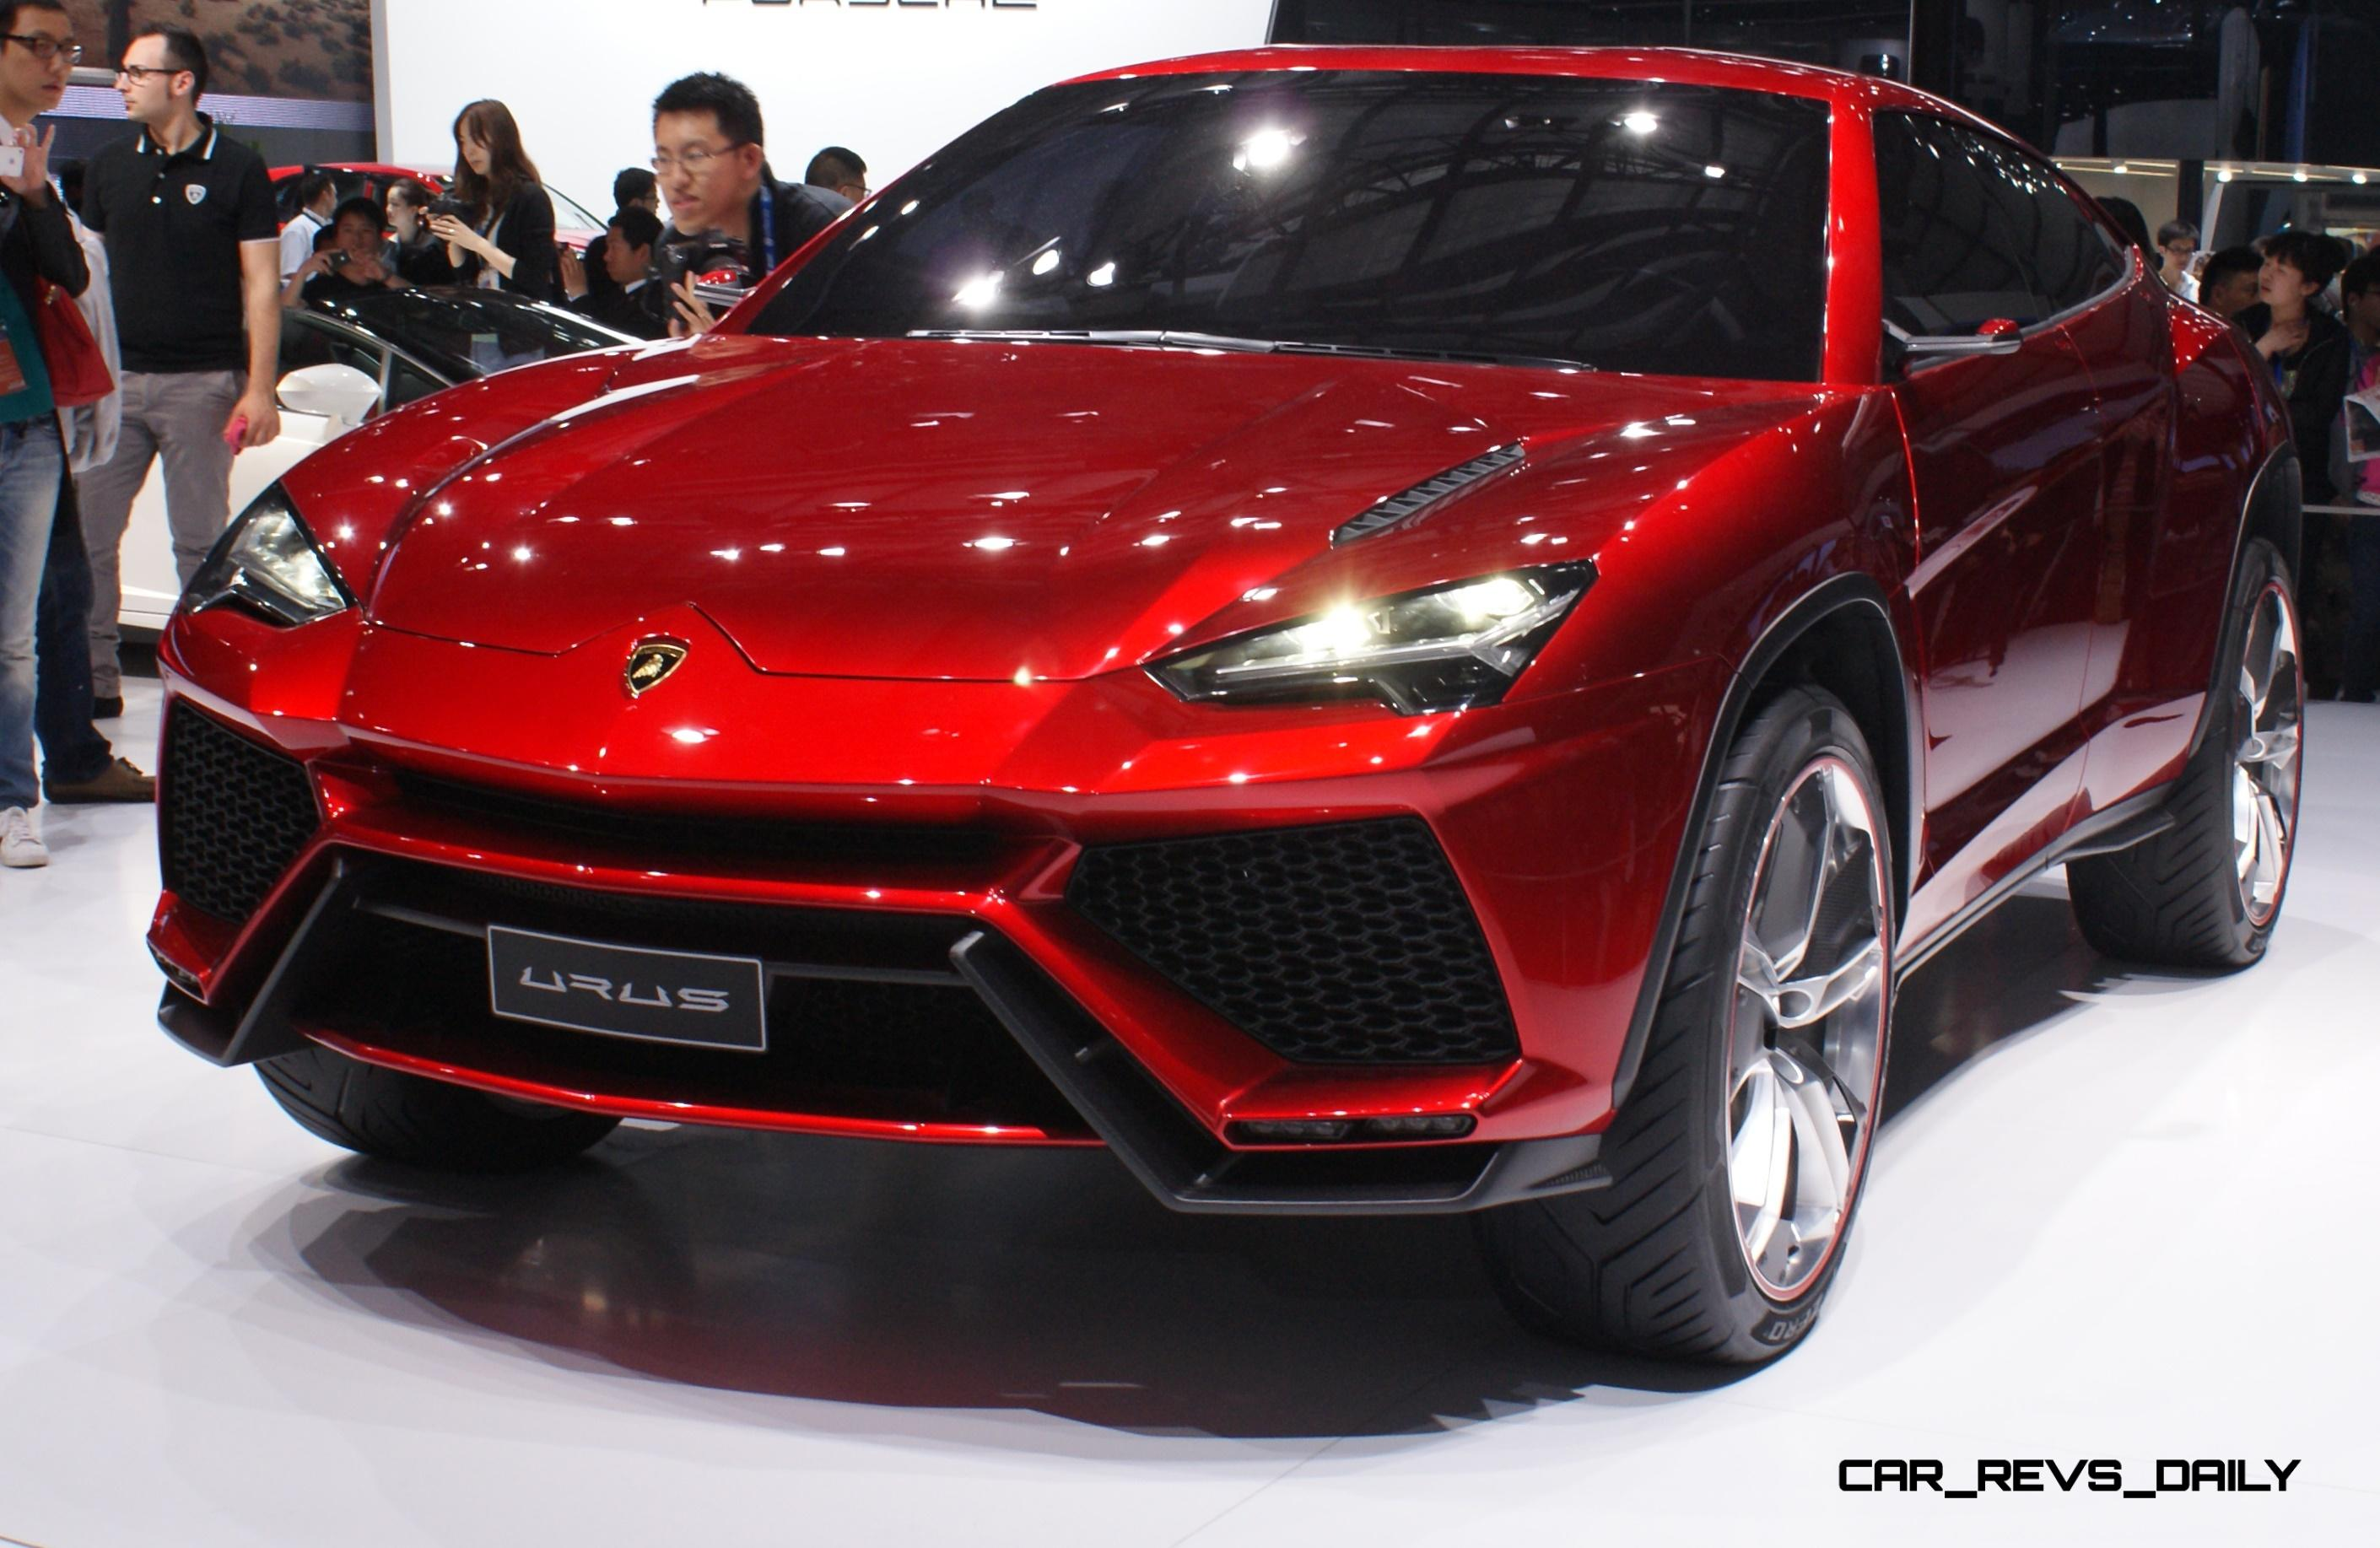 lamborghini to business insider suv could italian italy from build report government get price in million urus